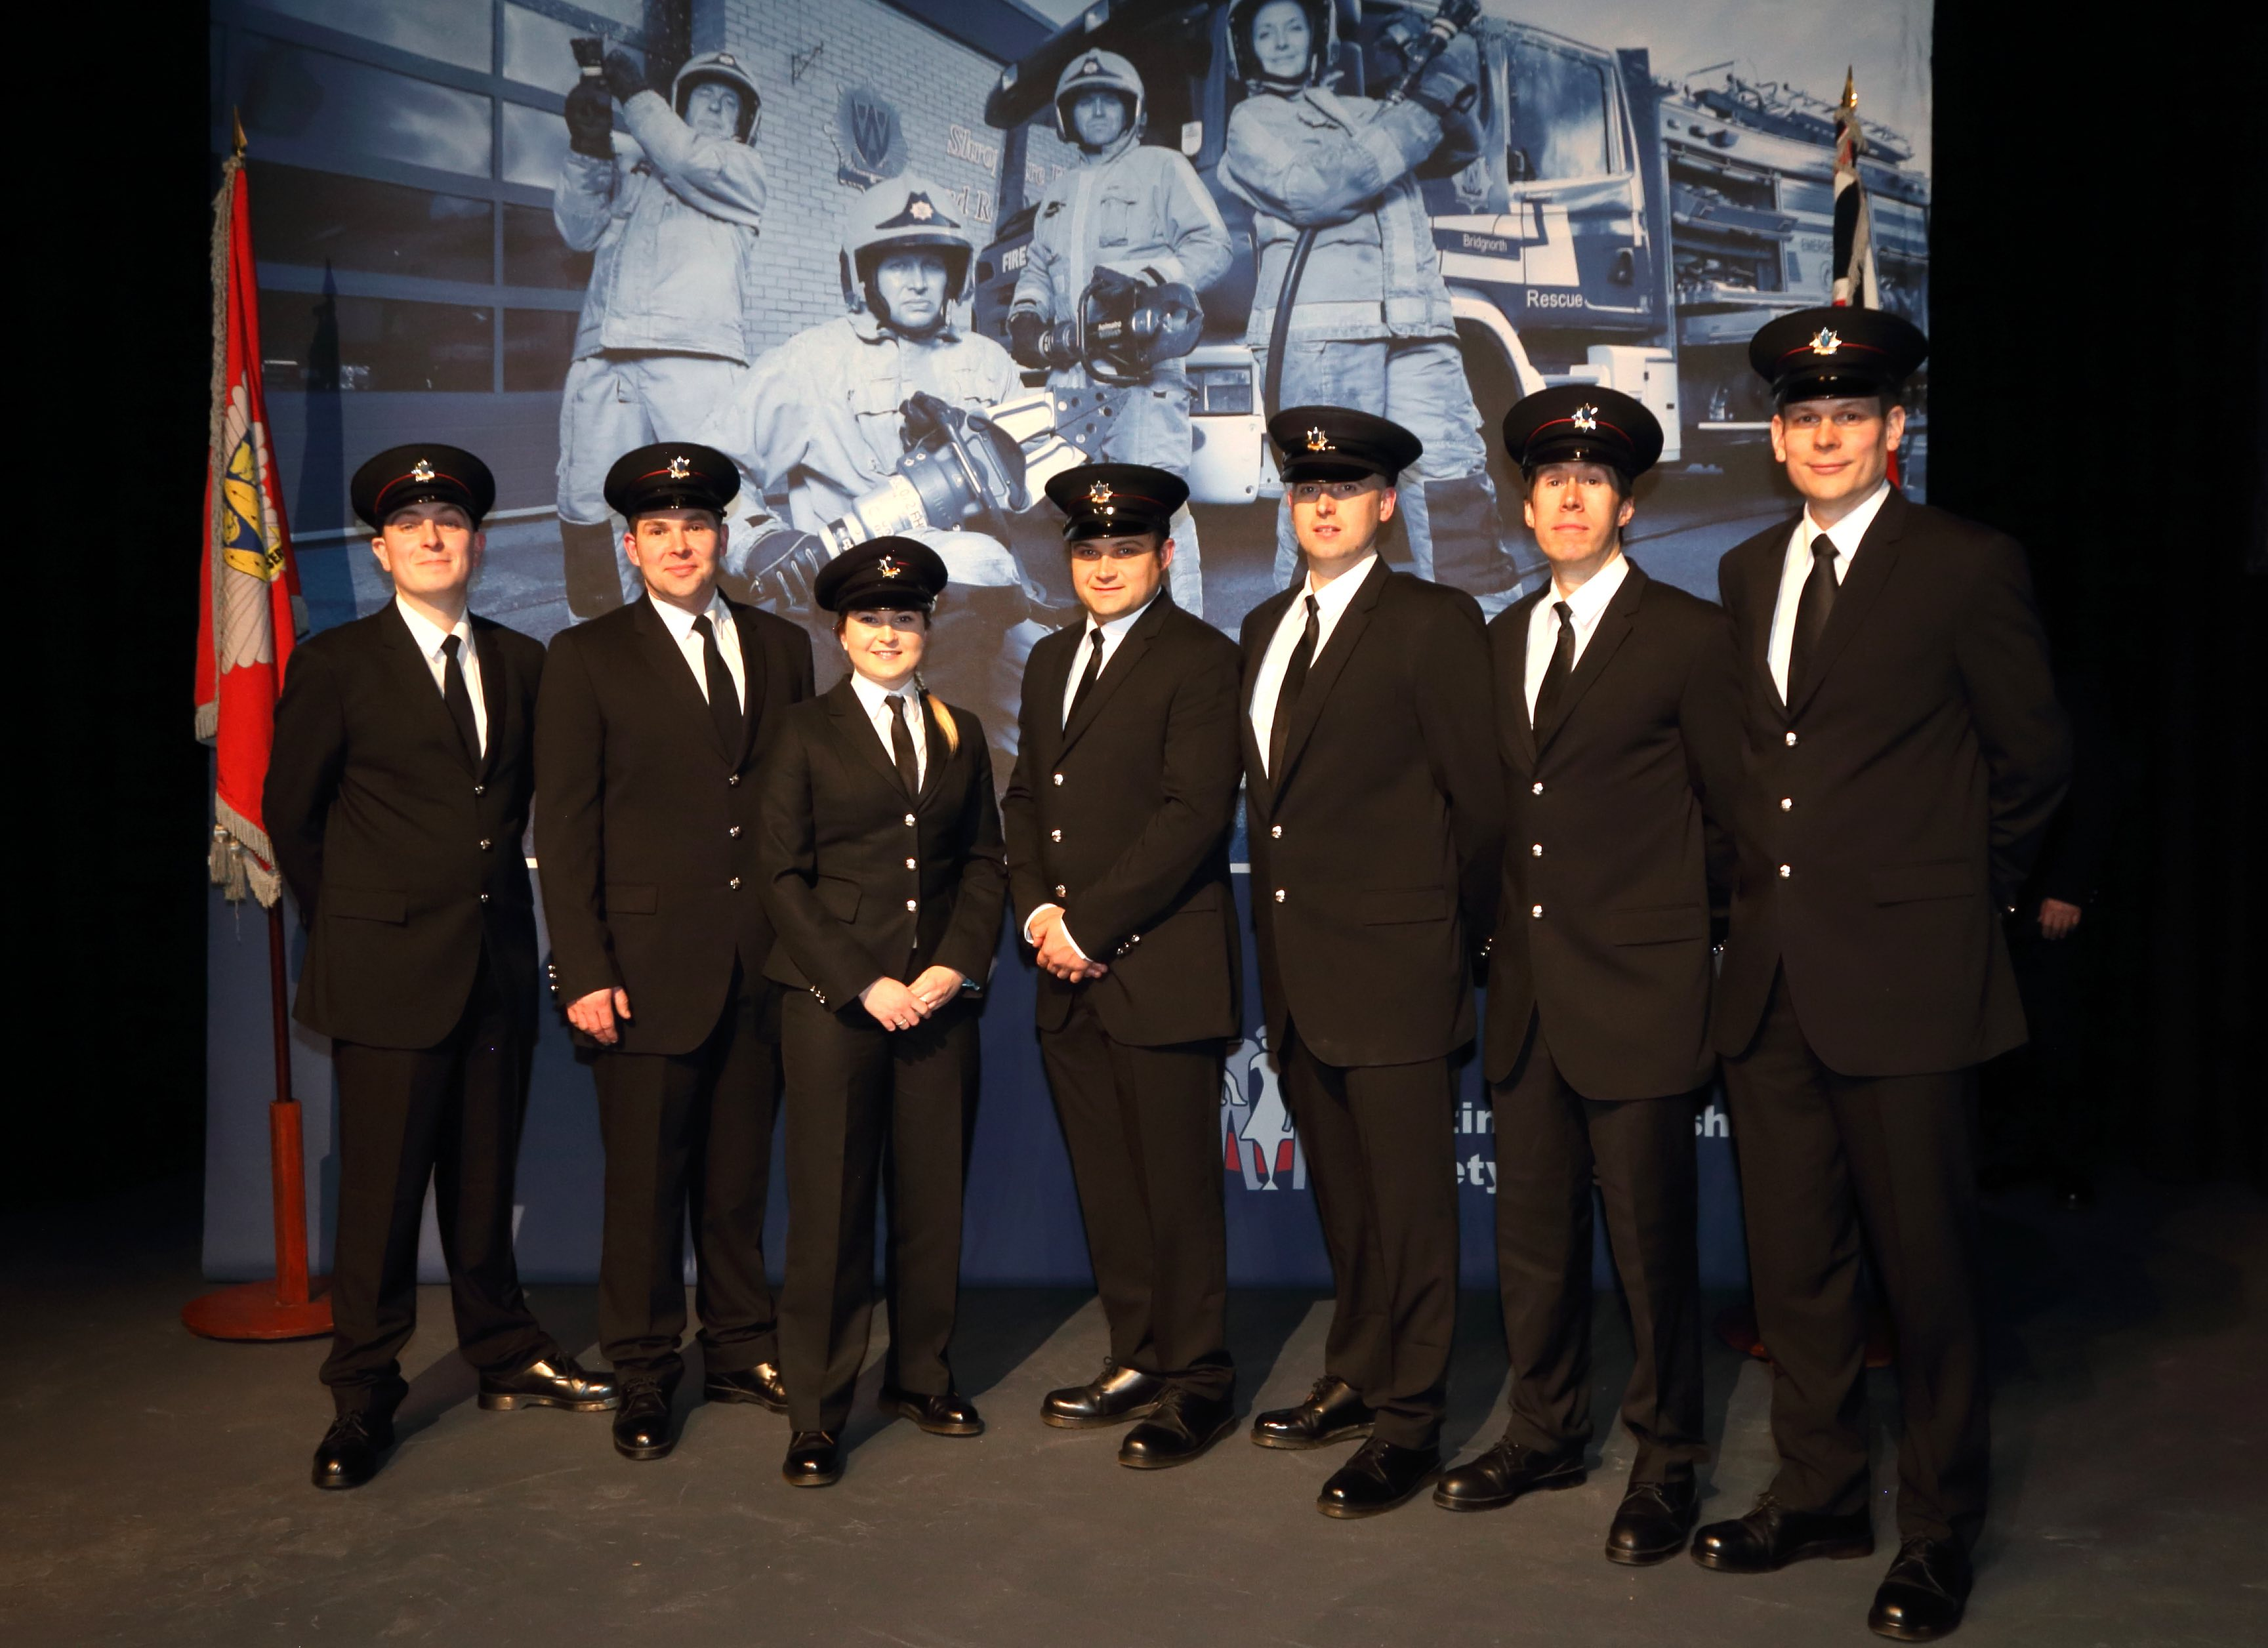 Firefighter Awards And Images Shropshire Fire And Rescue